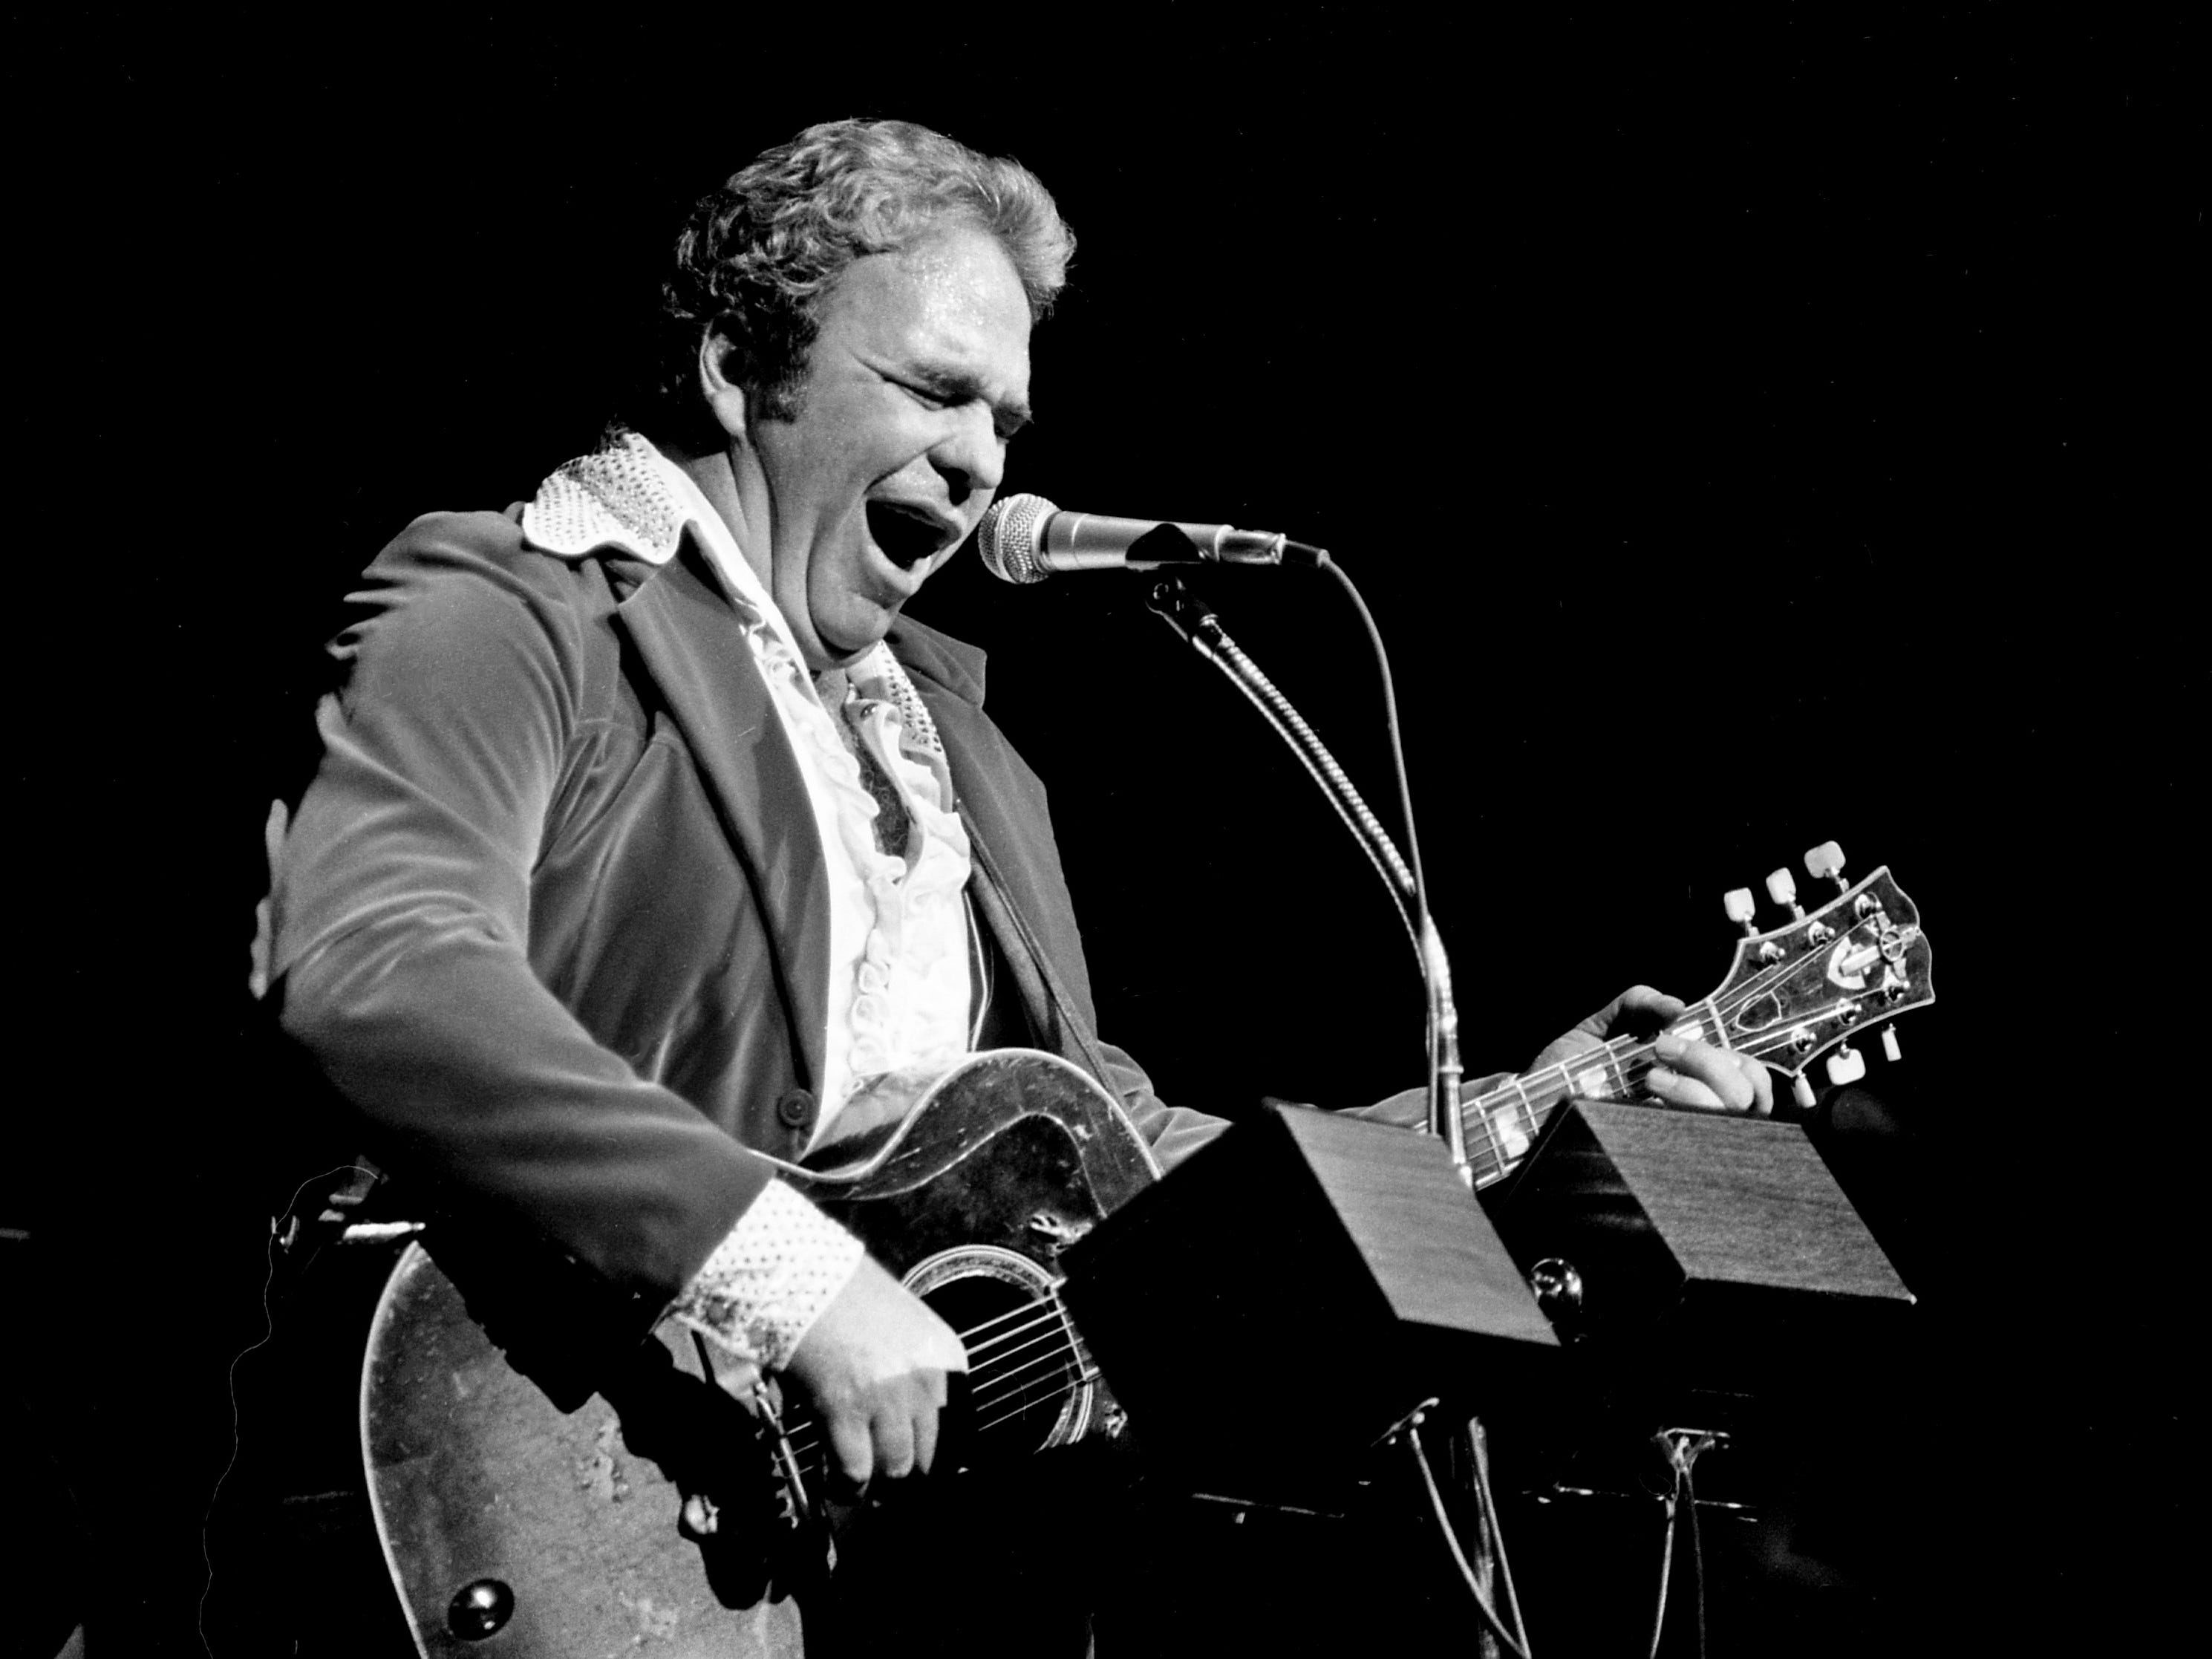 Singer-songwriter Hoyt Axton performs during his Halloween concert at the Grand Ole Opry House on Oct. 31, 1978.